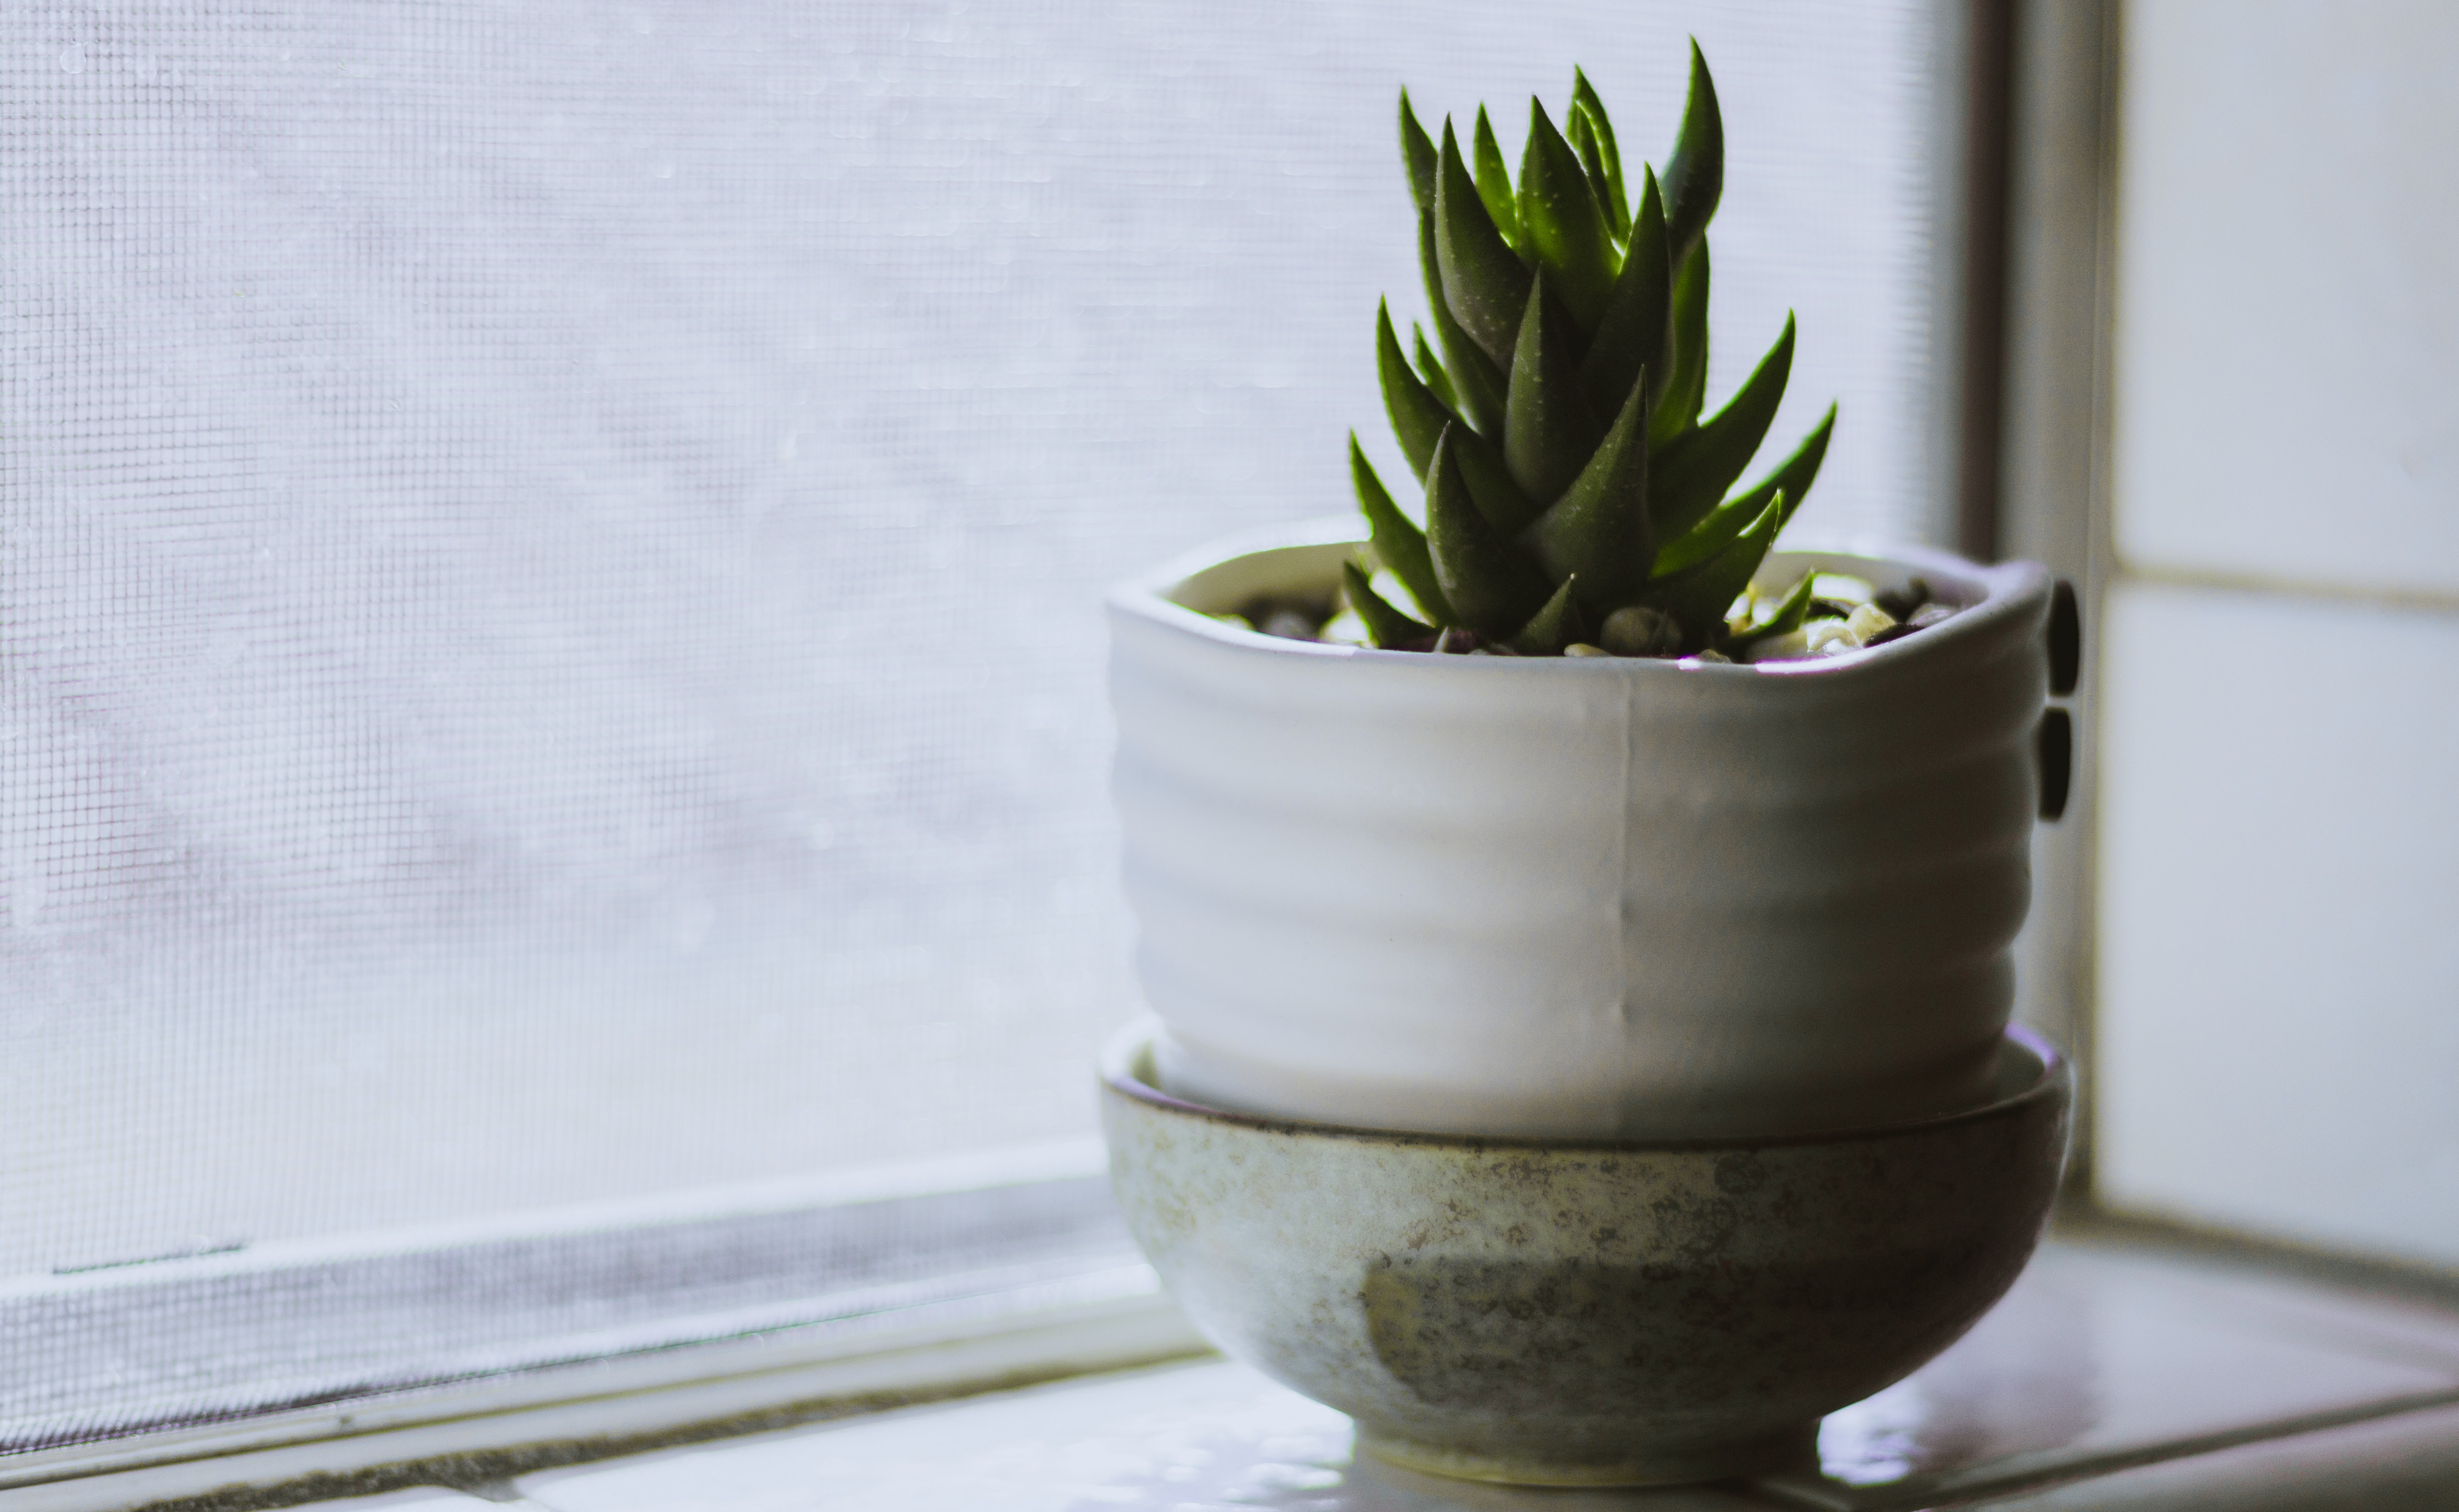 green plant on white ceramic vase